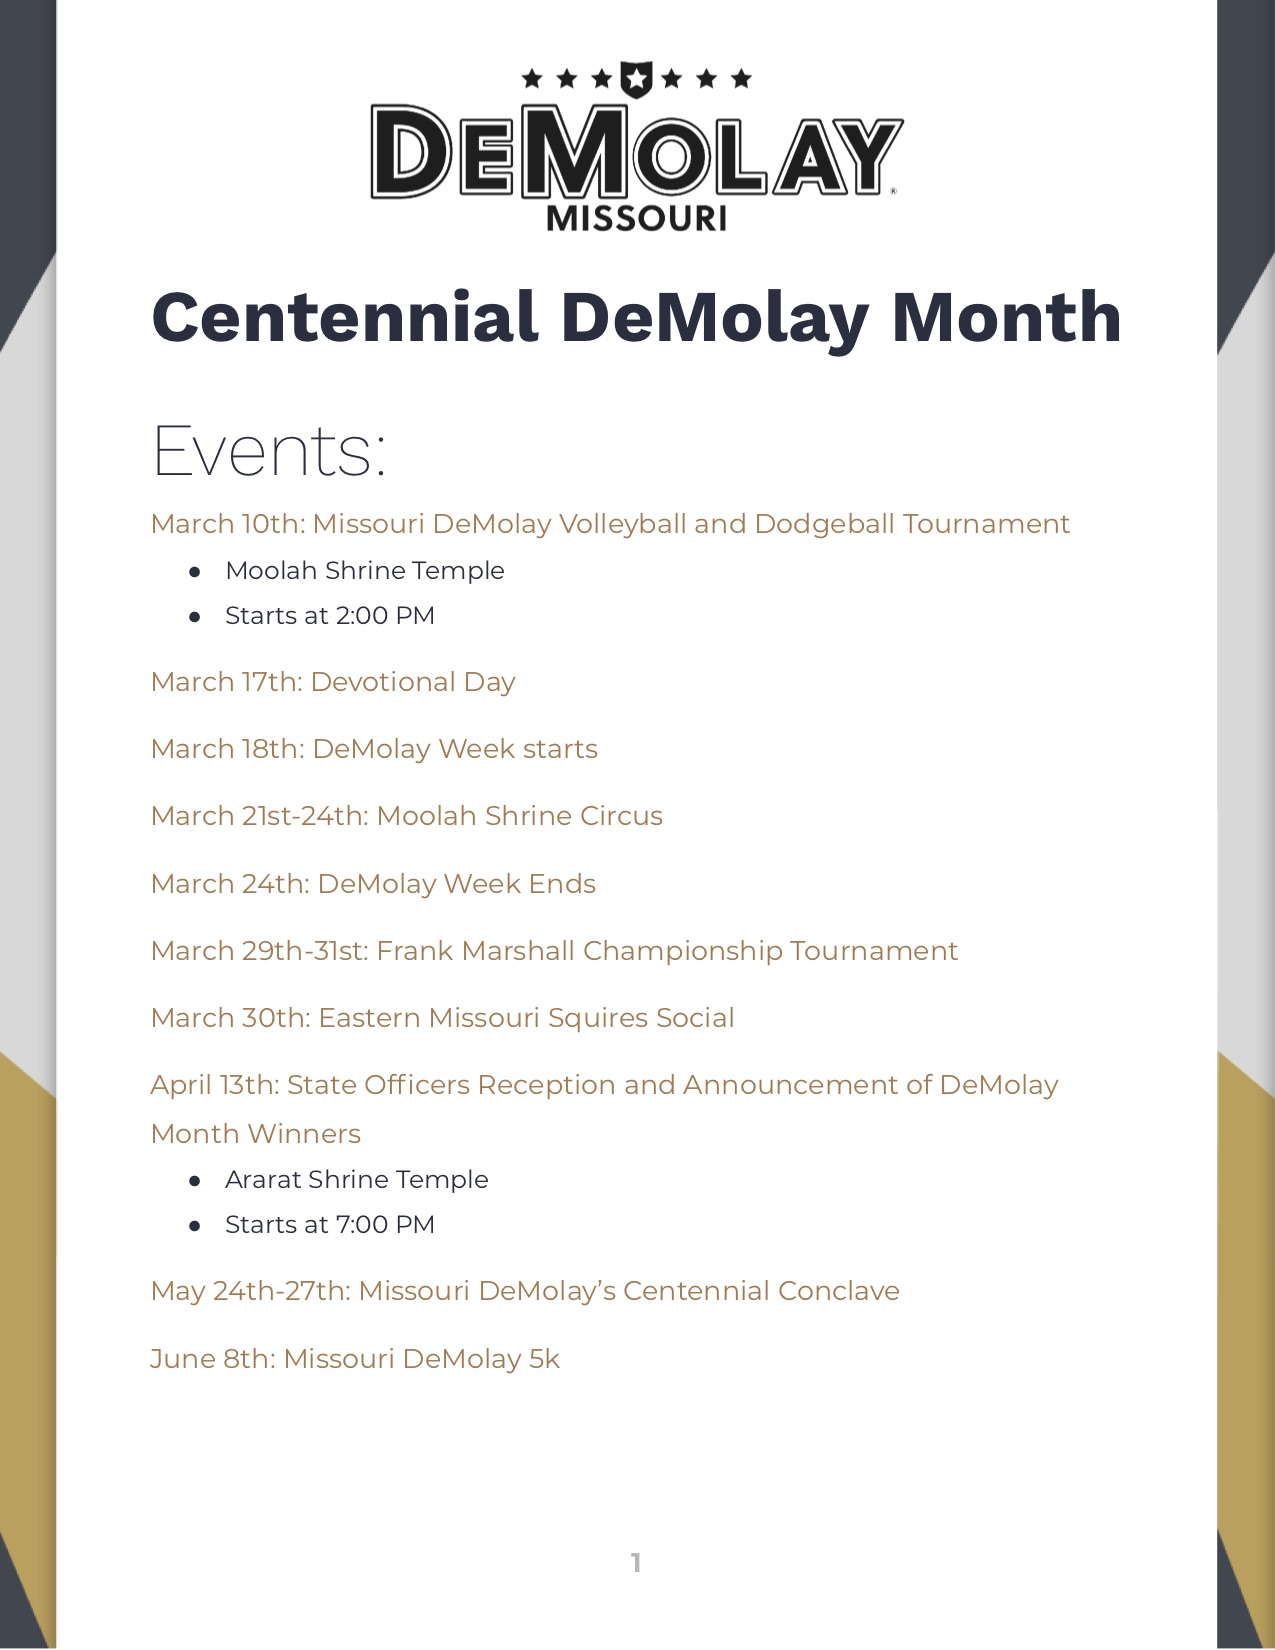 Missouri DeMolay Centennial DeMolay Month